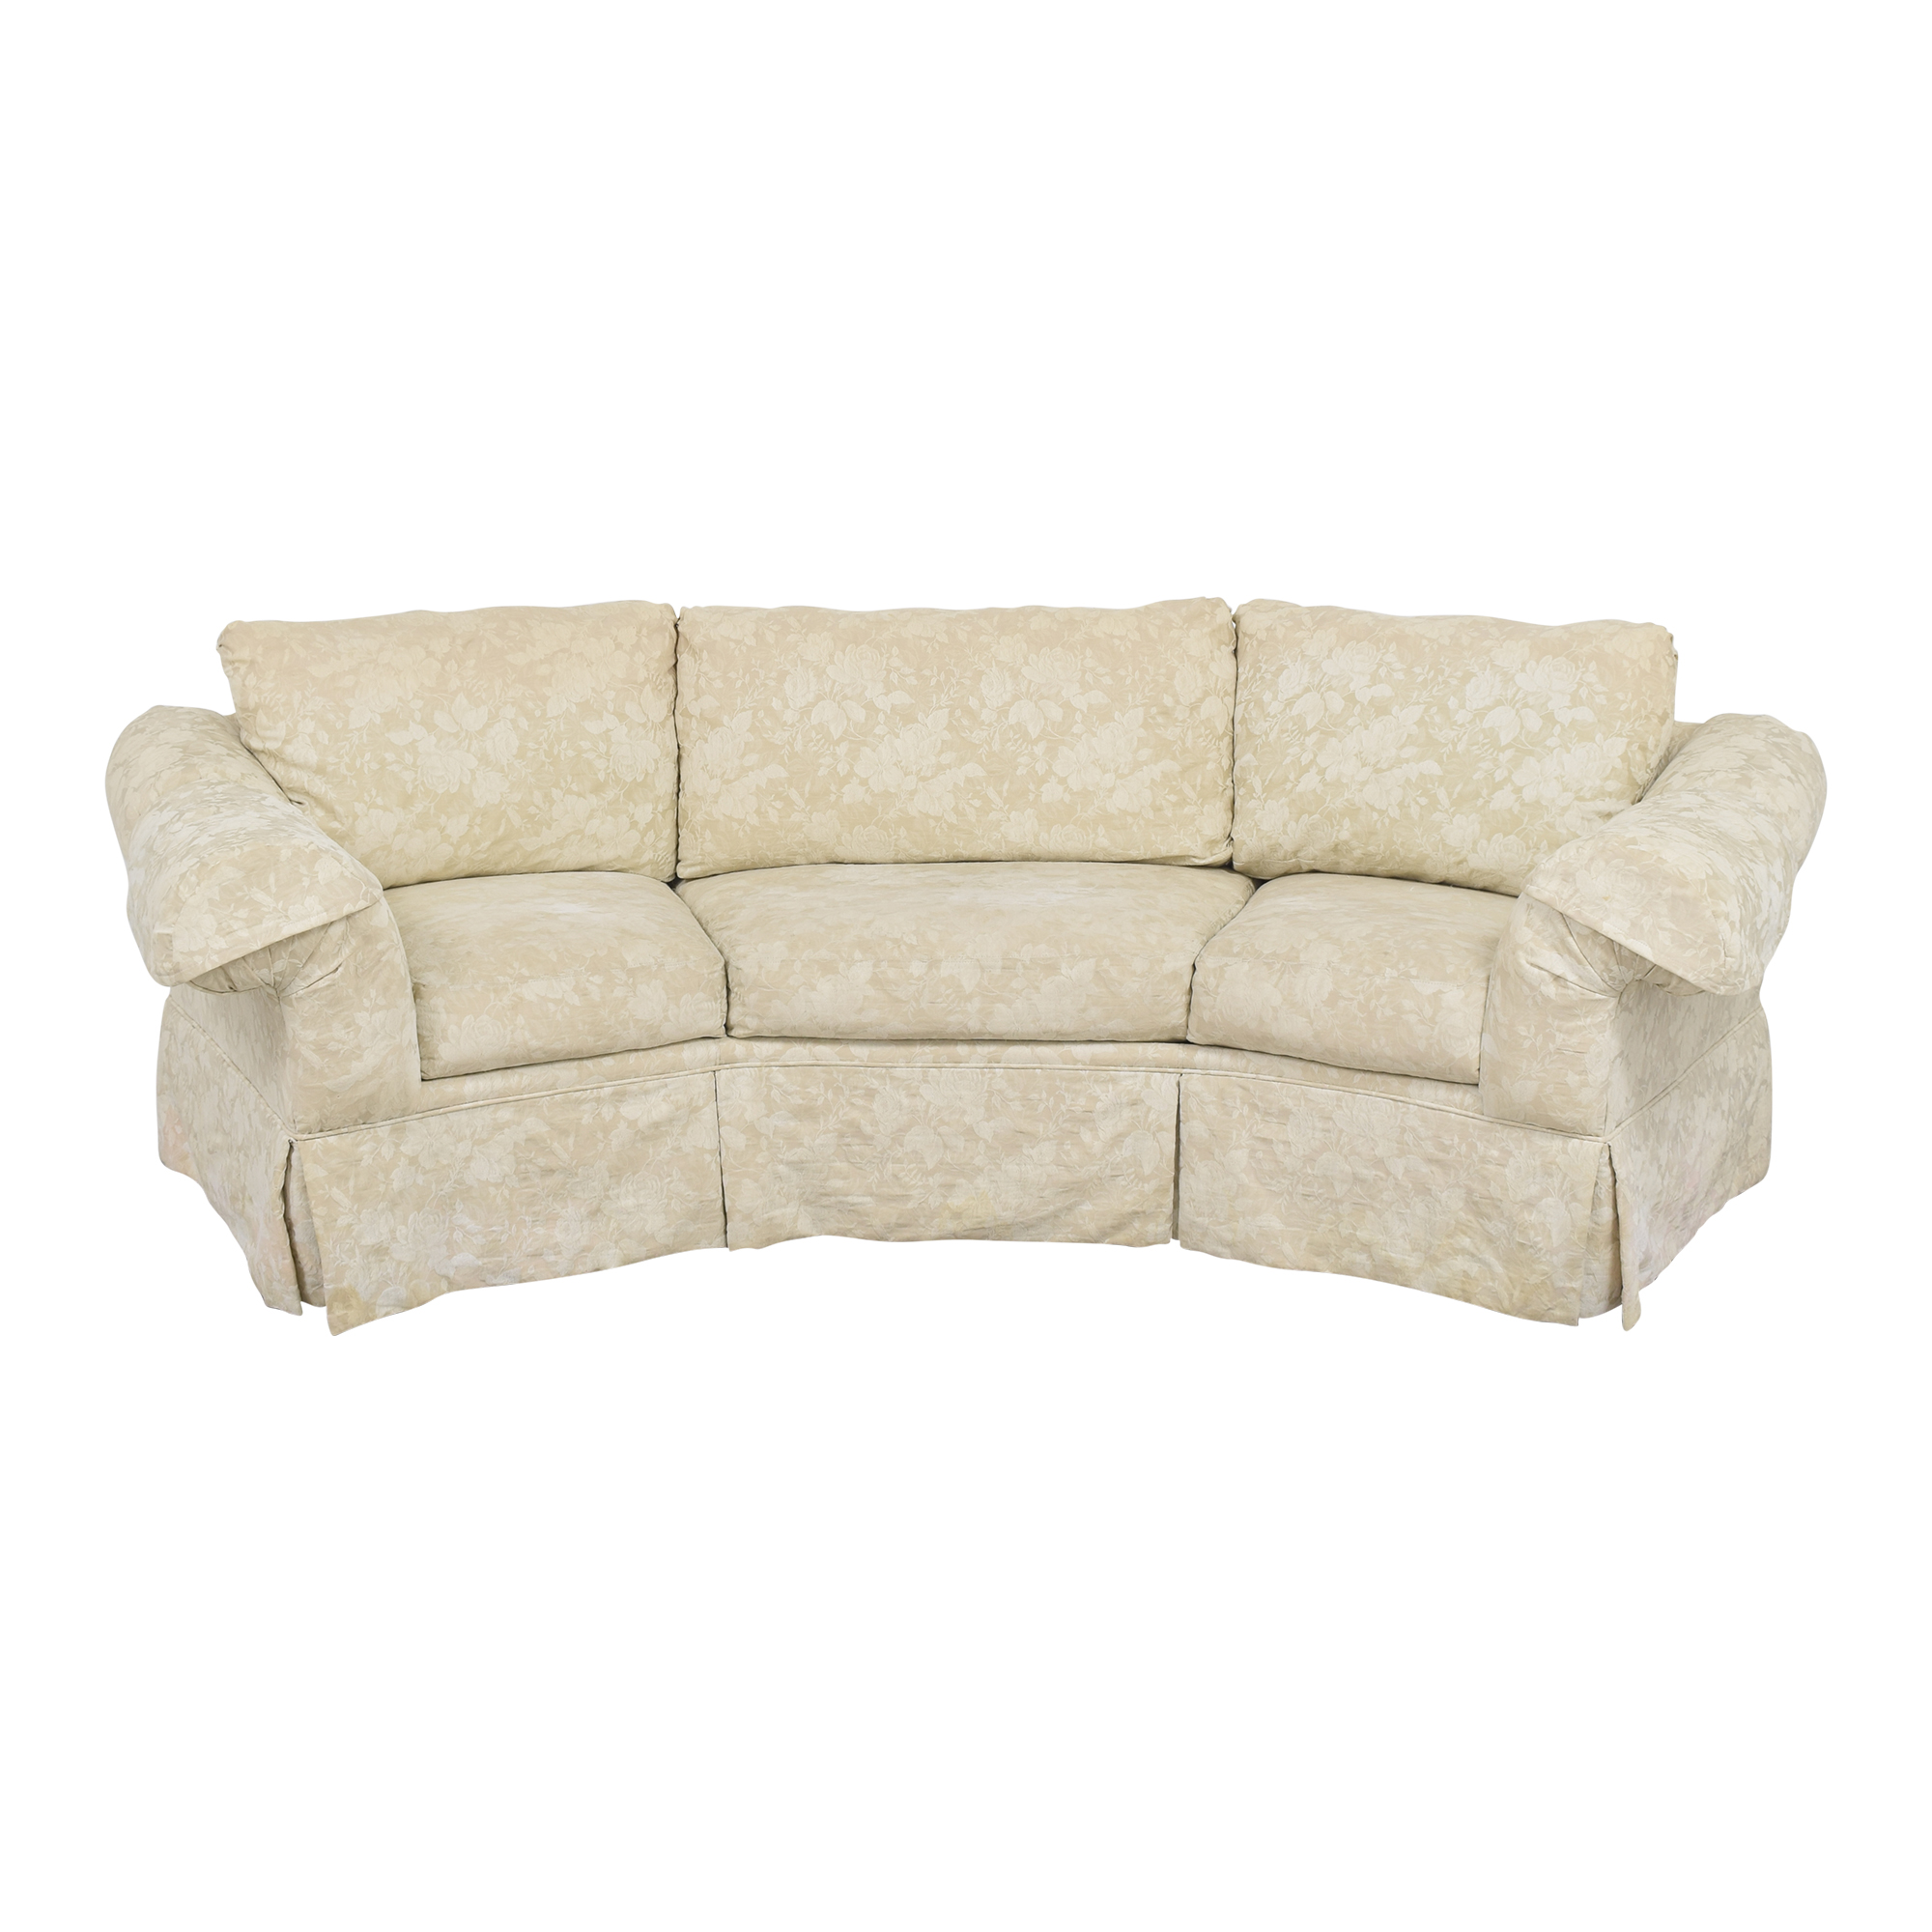 buy Rowe Furniture Rowe Furniture Skirted Crescent Sofa online